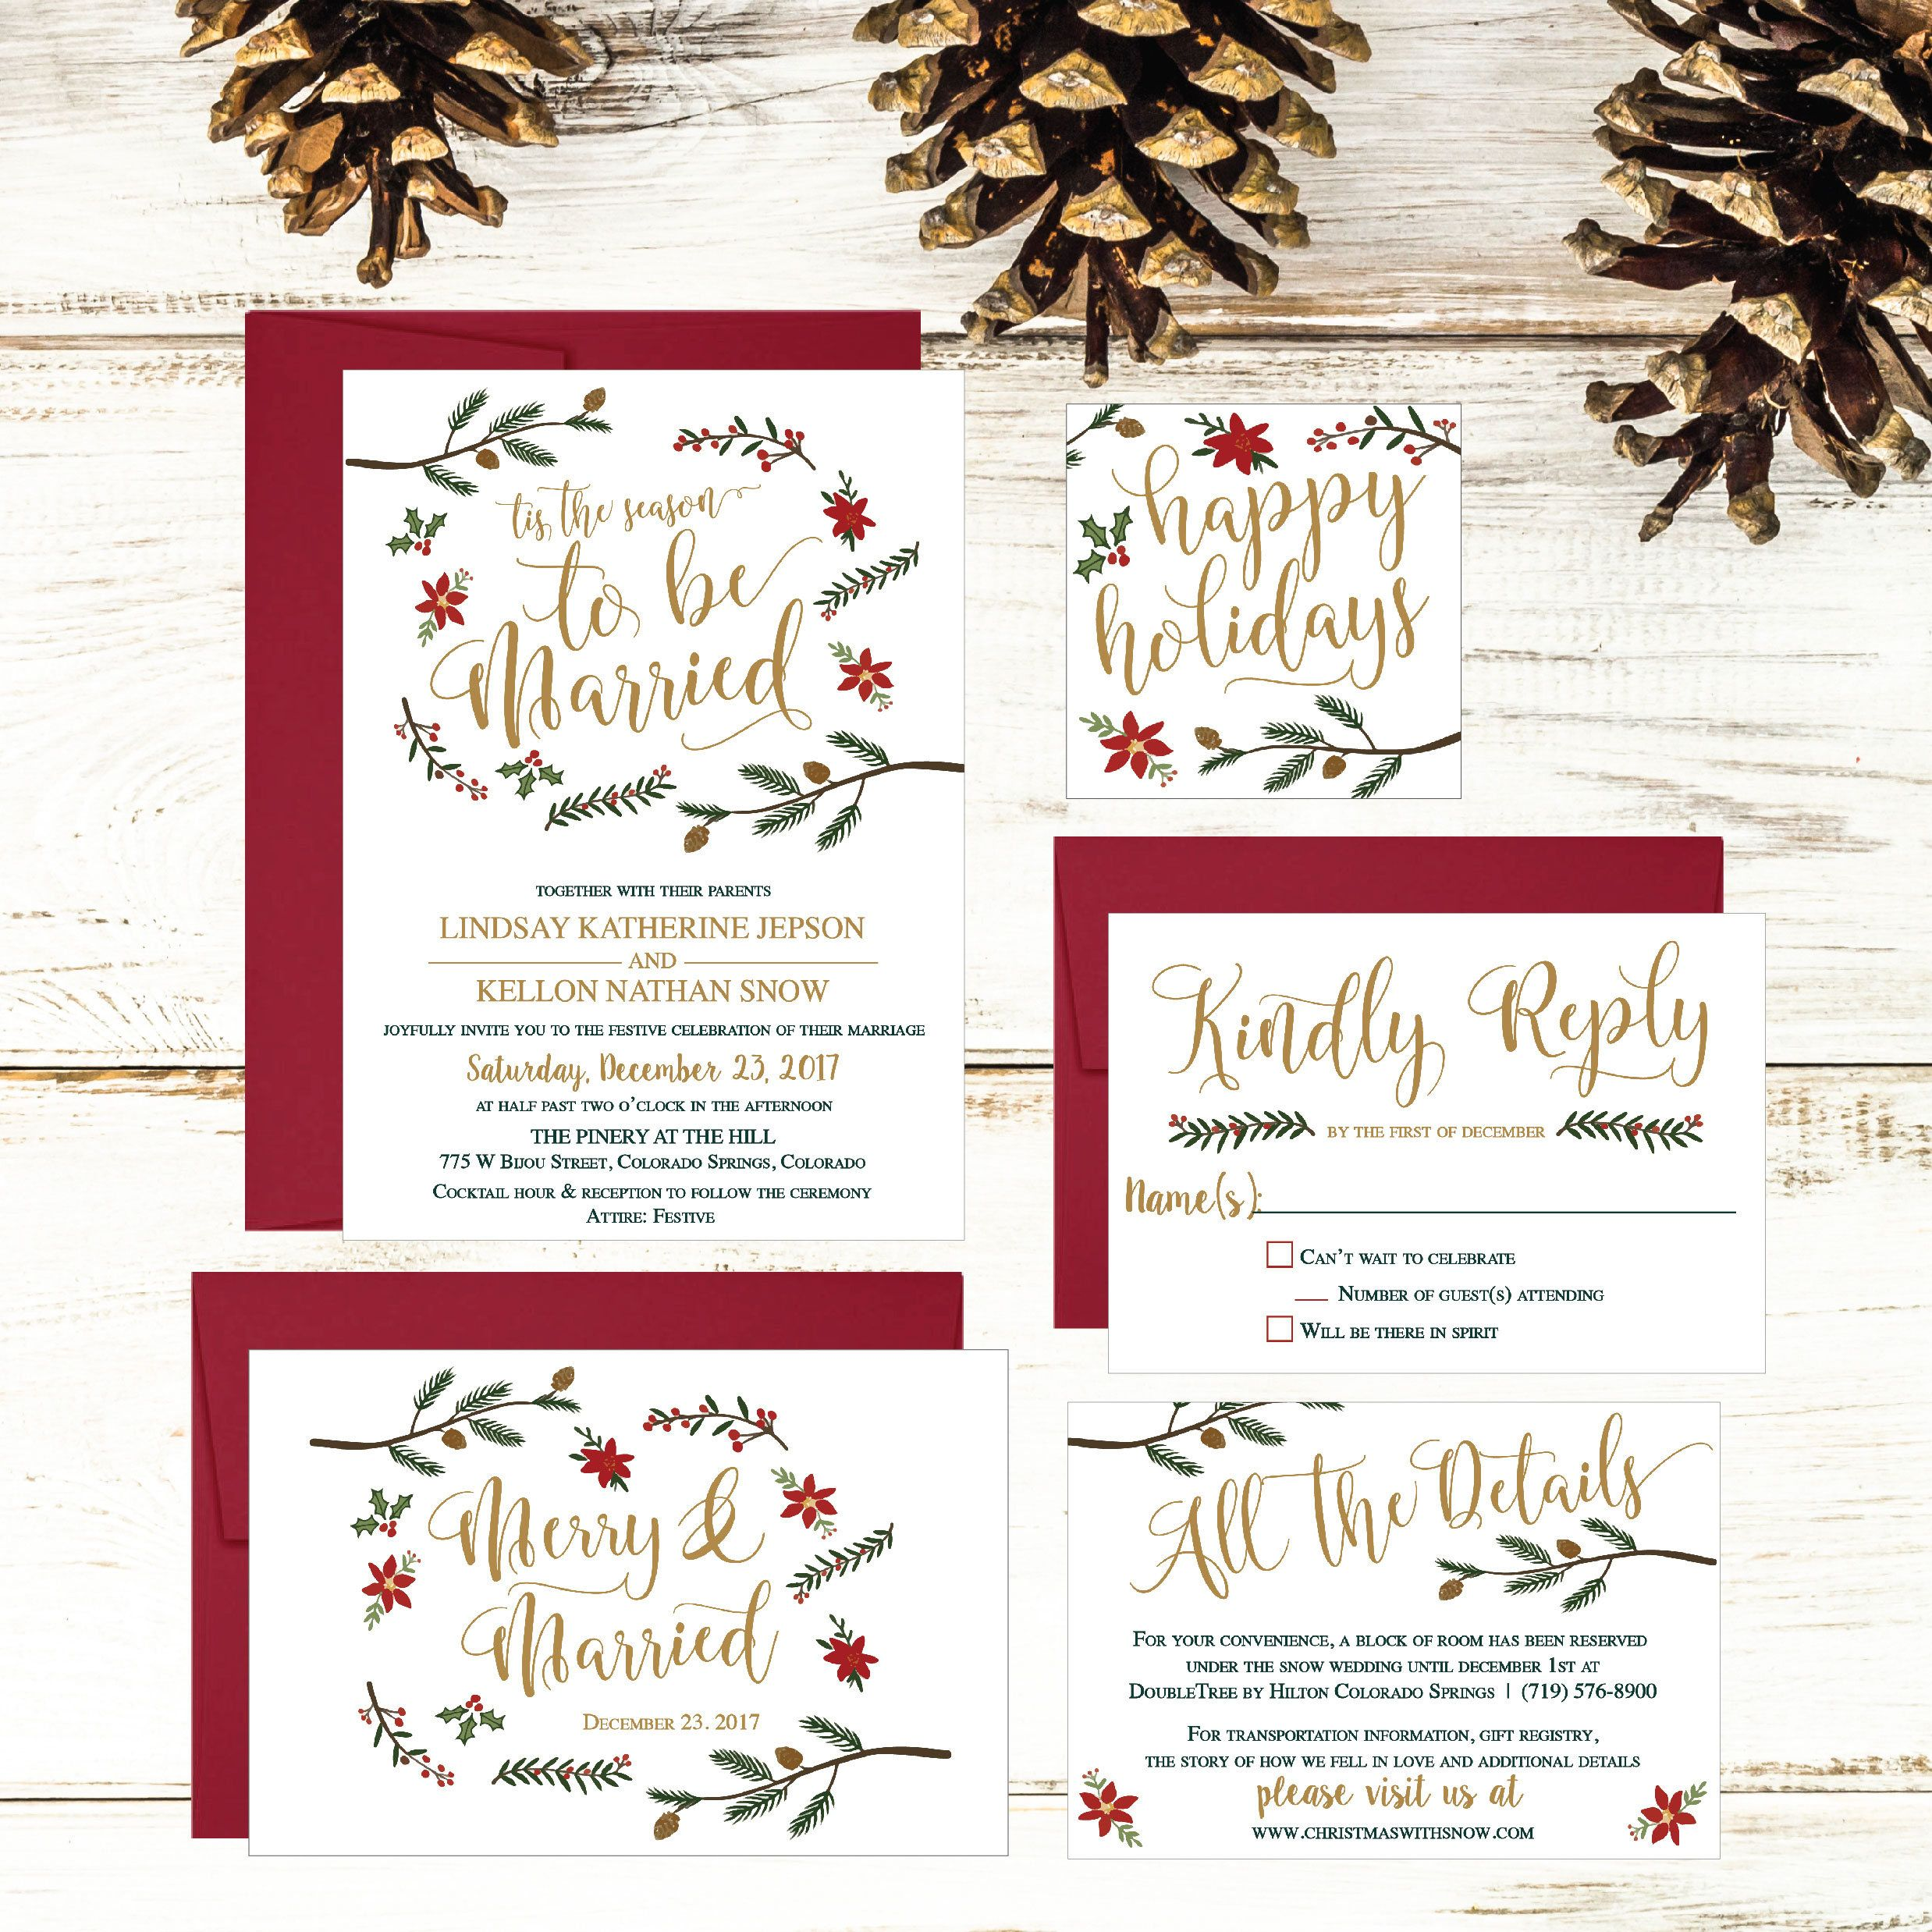 Christmas Wedding Invitations.Pin On Christmas Weddings